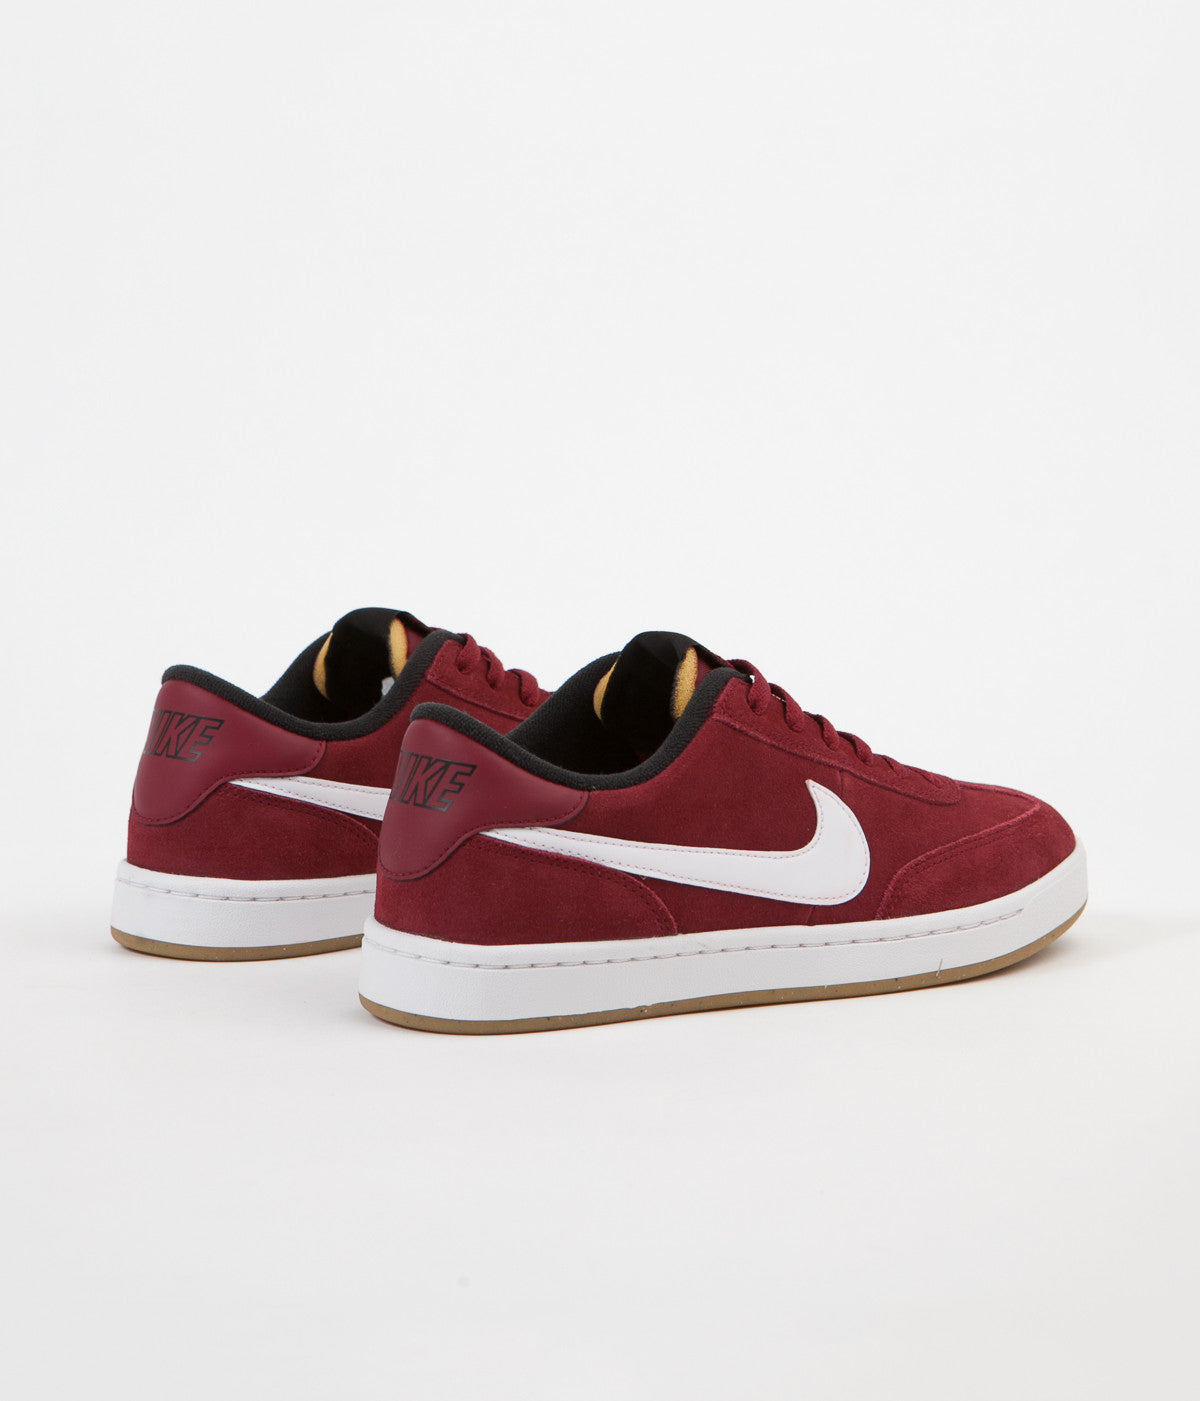 1a10e14e2405 Nike SB FC Classic Shoes - Team Red   White - Black - Vivid Orange ...